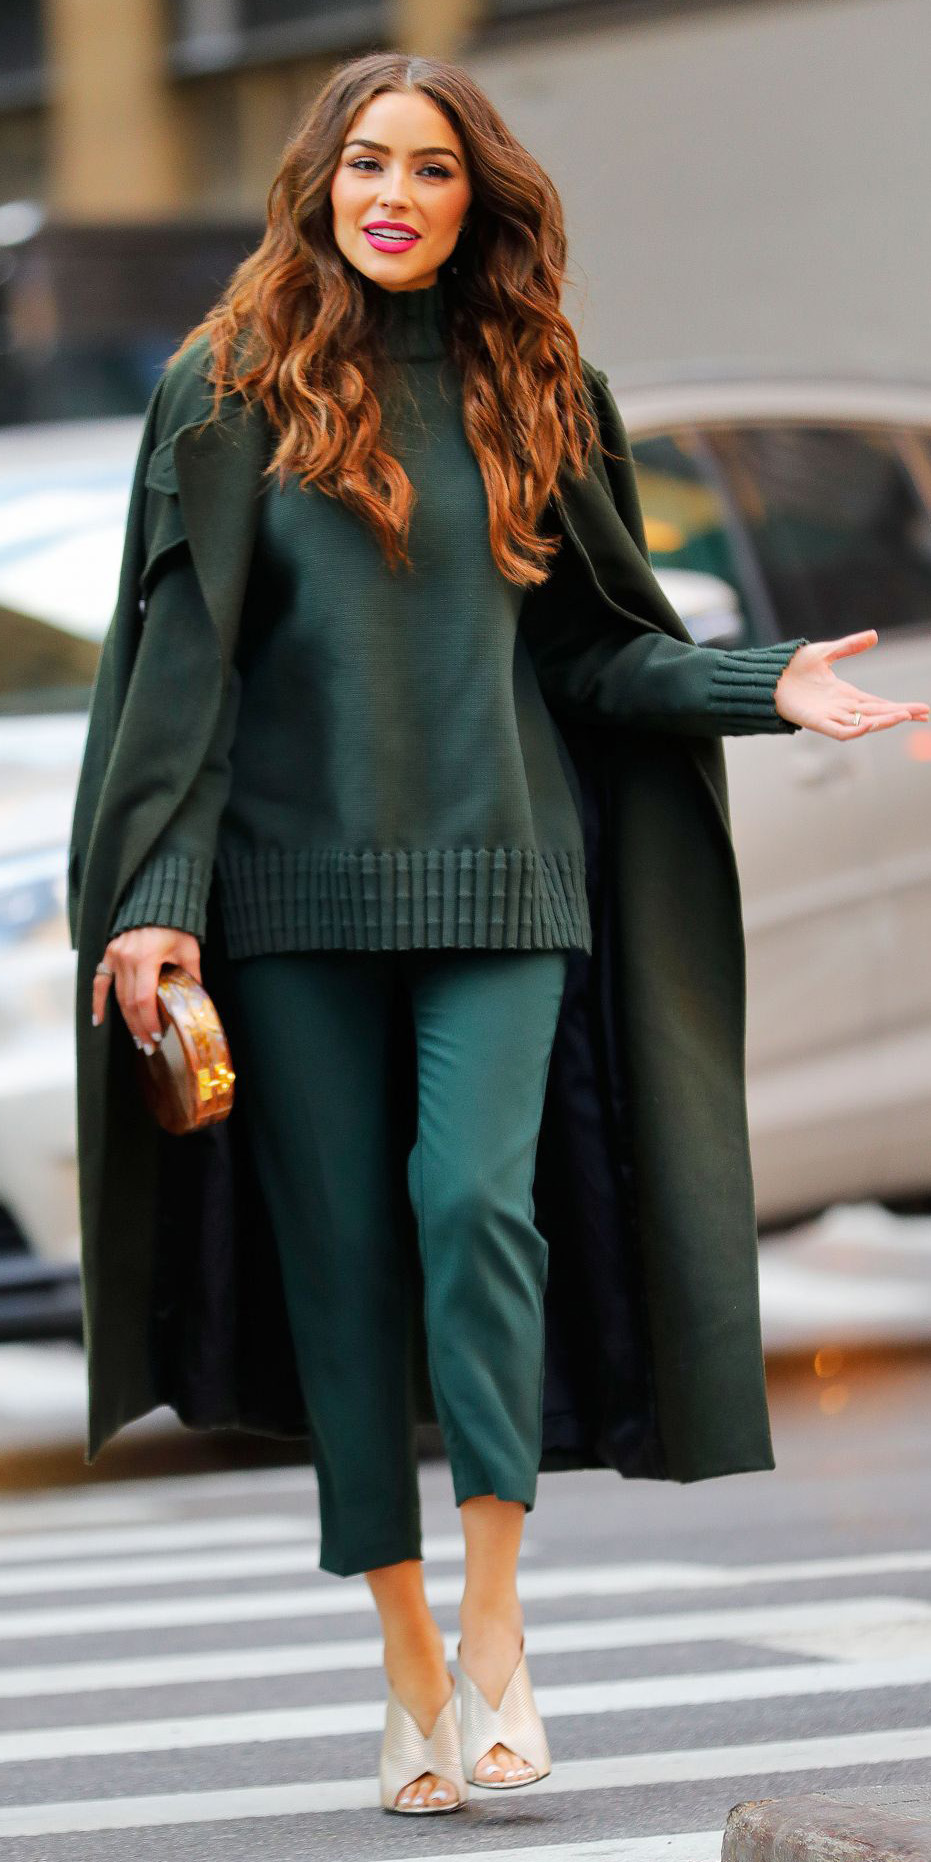 green-dark-slim-pants-green-dark-sweater-turtleneck-tan-shoe-sandalh-green-dark-jacket-coat-mono-oliviaculpo-newyork-howtowear-fashion-style-outfit-fall-winter-brun-dinner.jpg